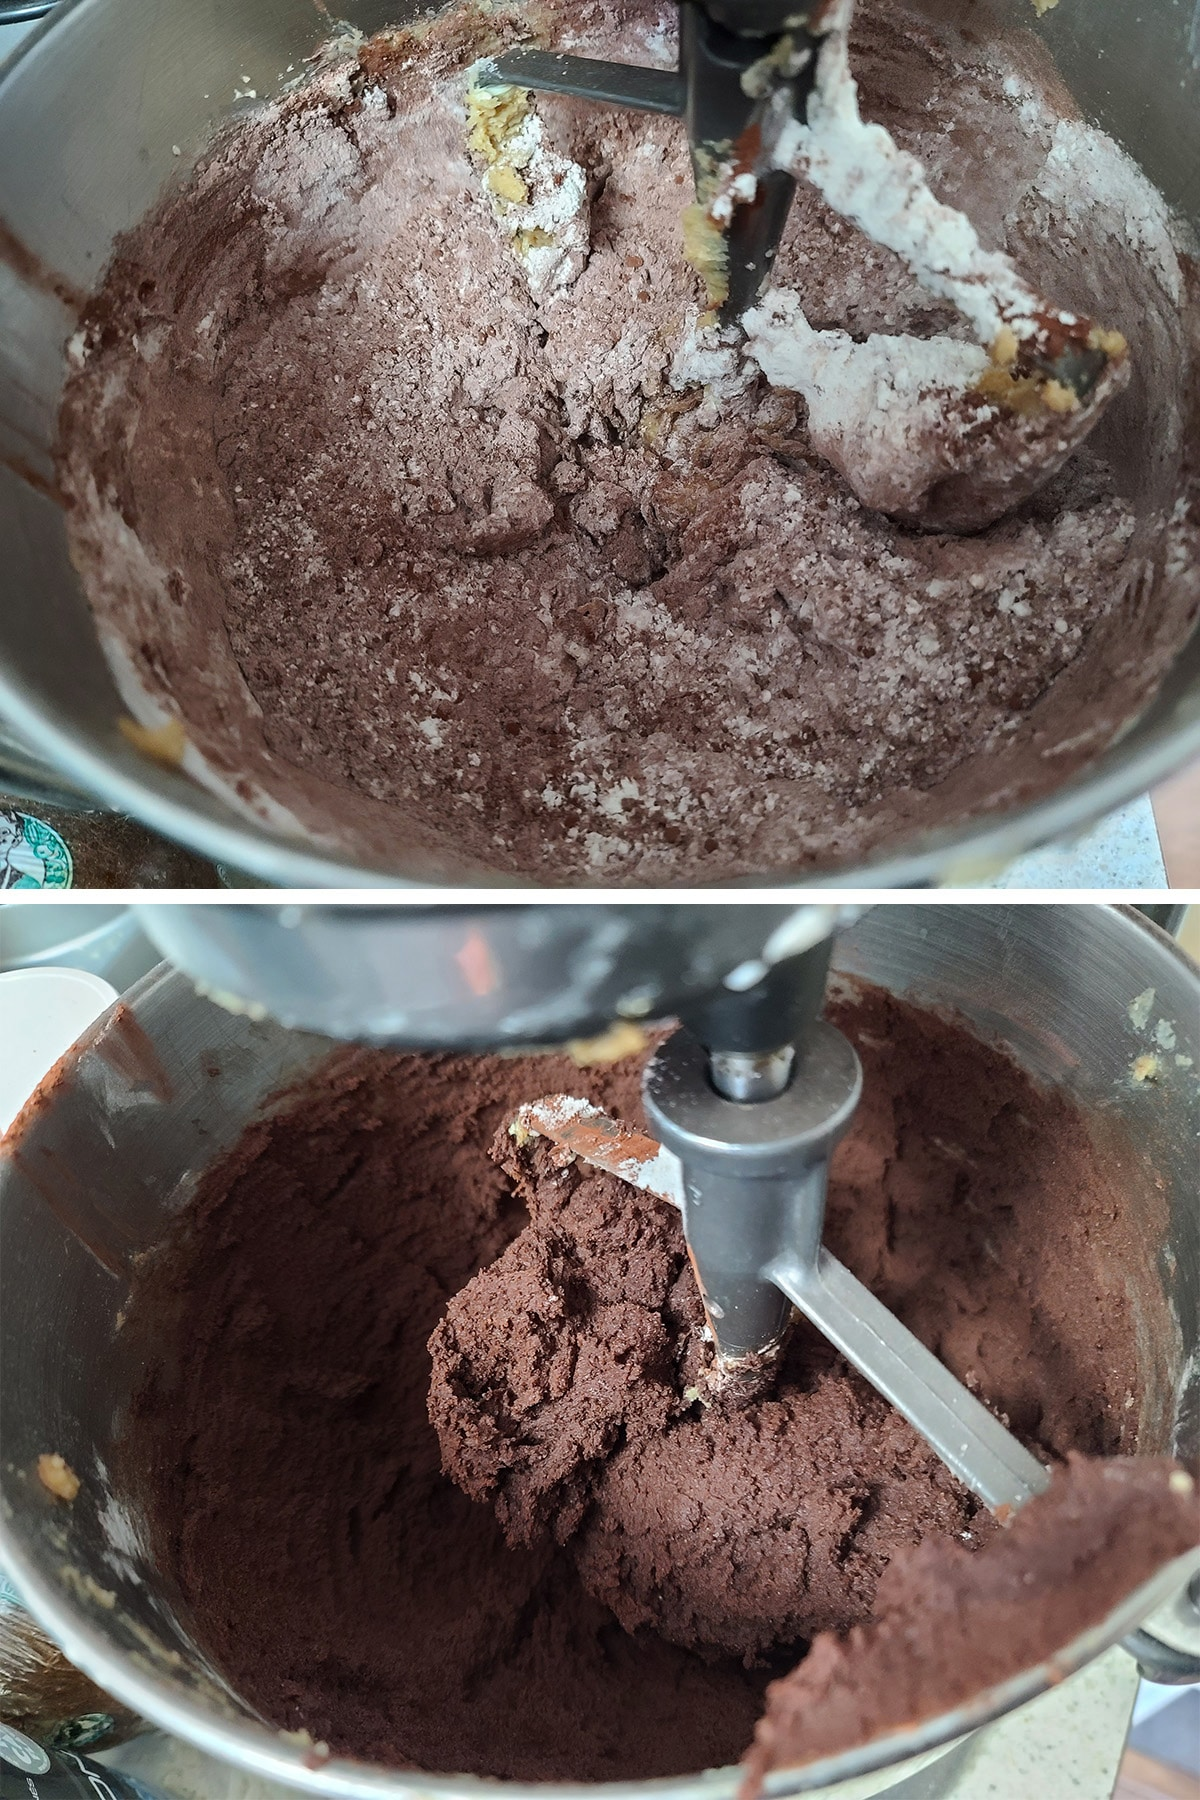 Cocoa and flour are added to the butter and sugar mix, and beaten to a dough.